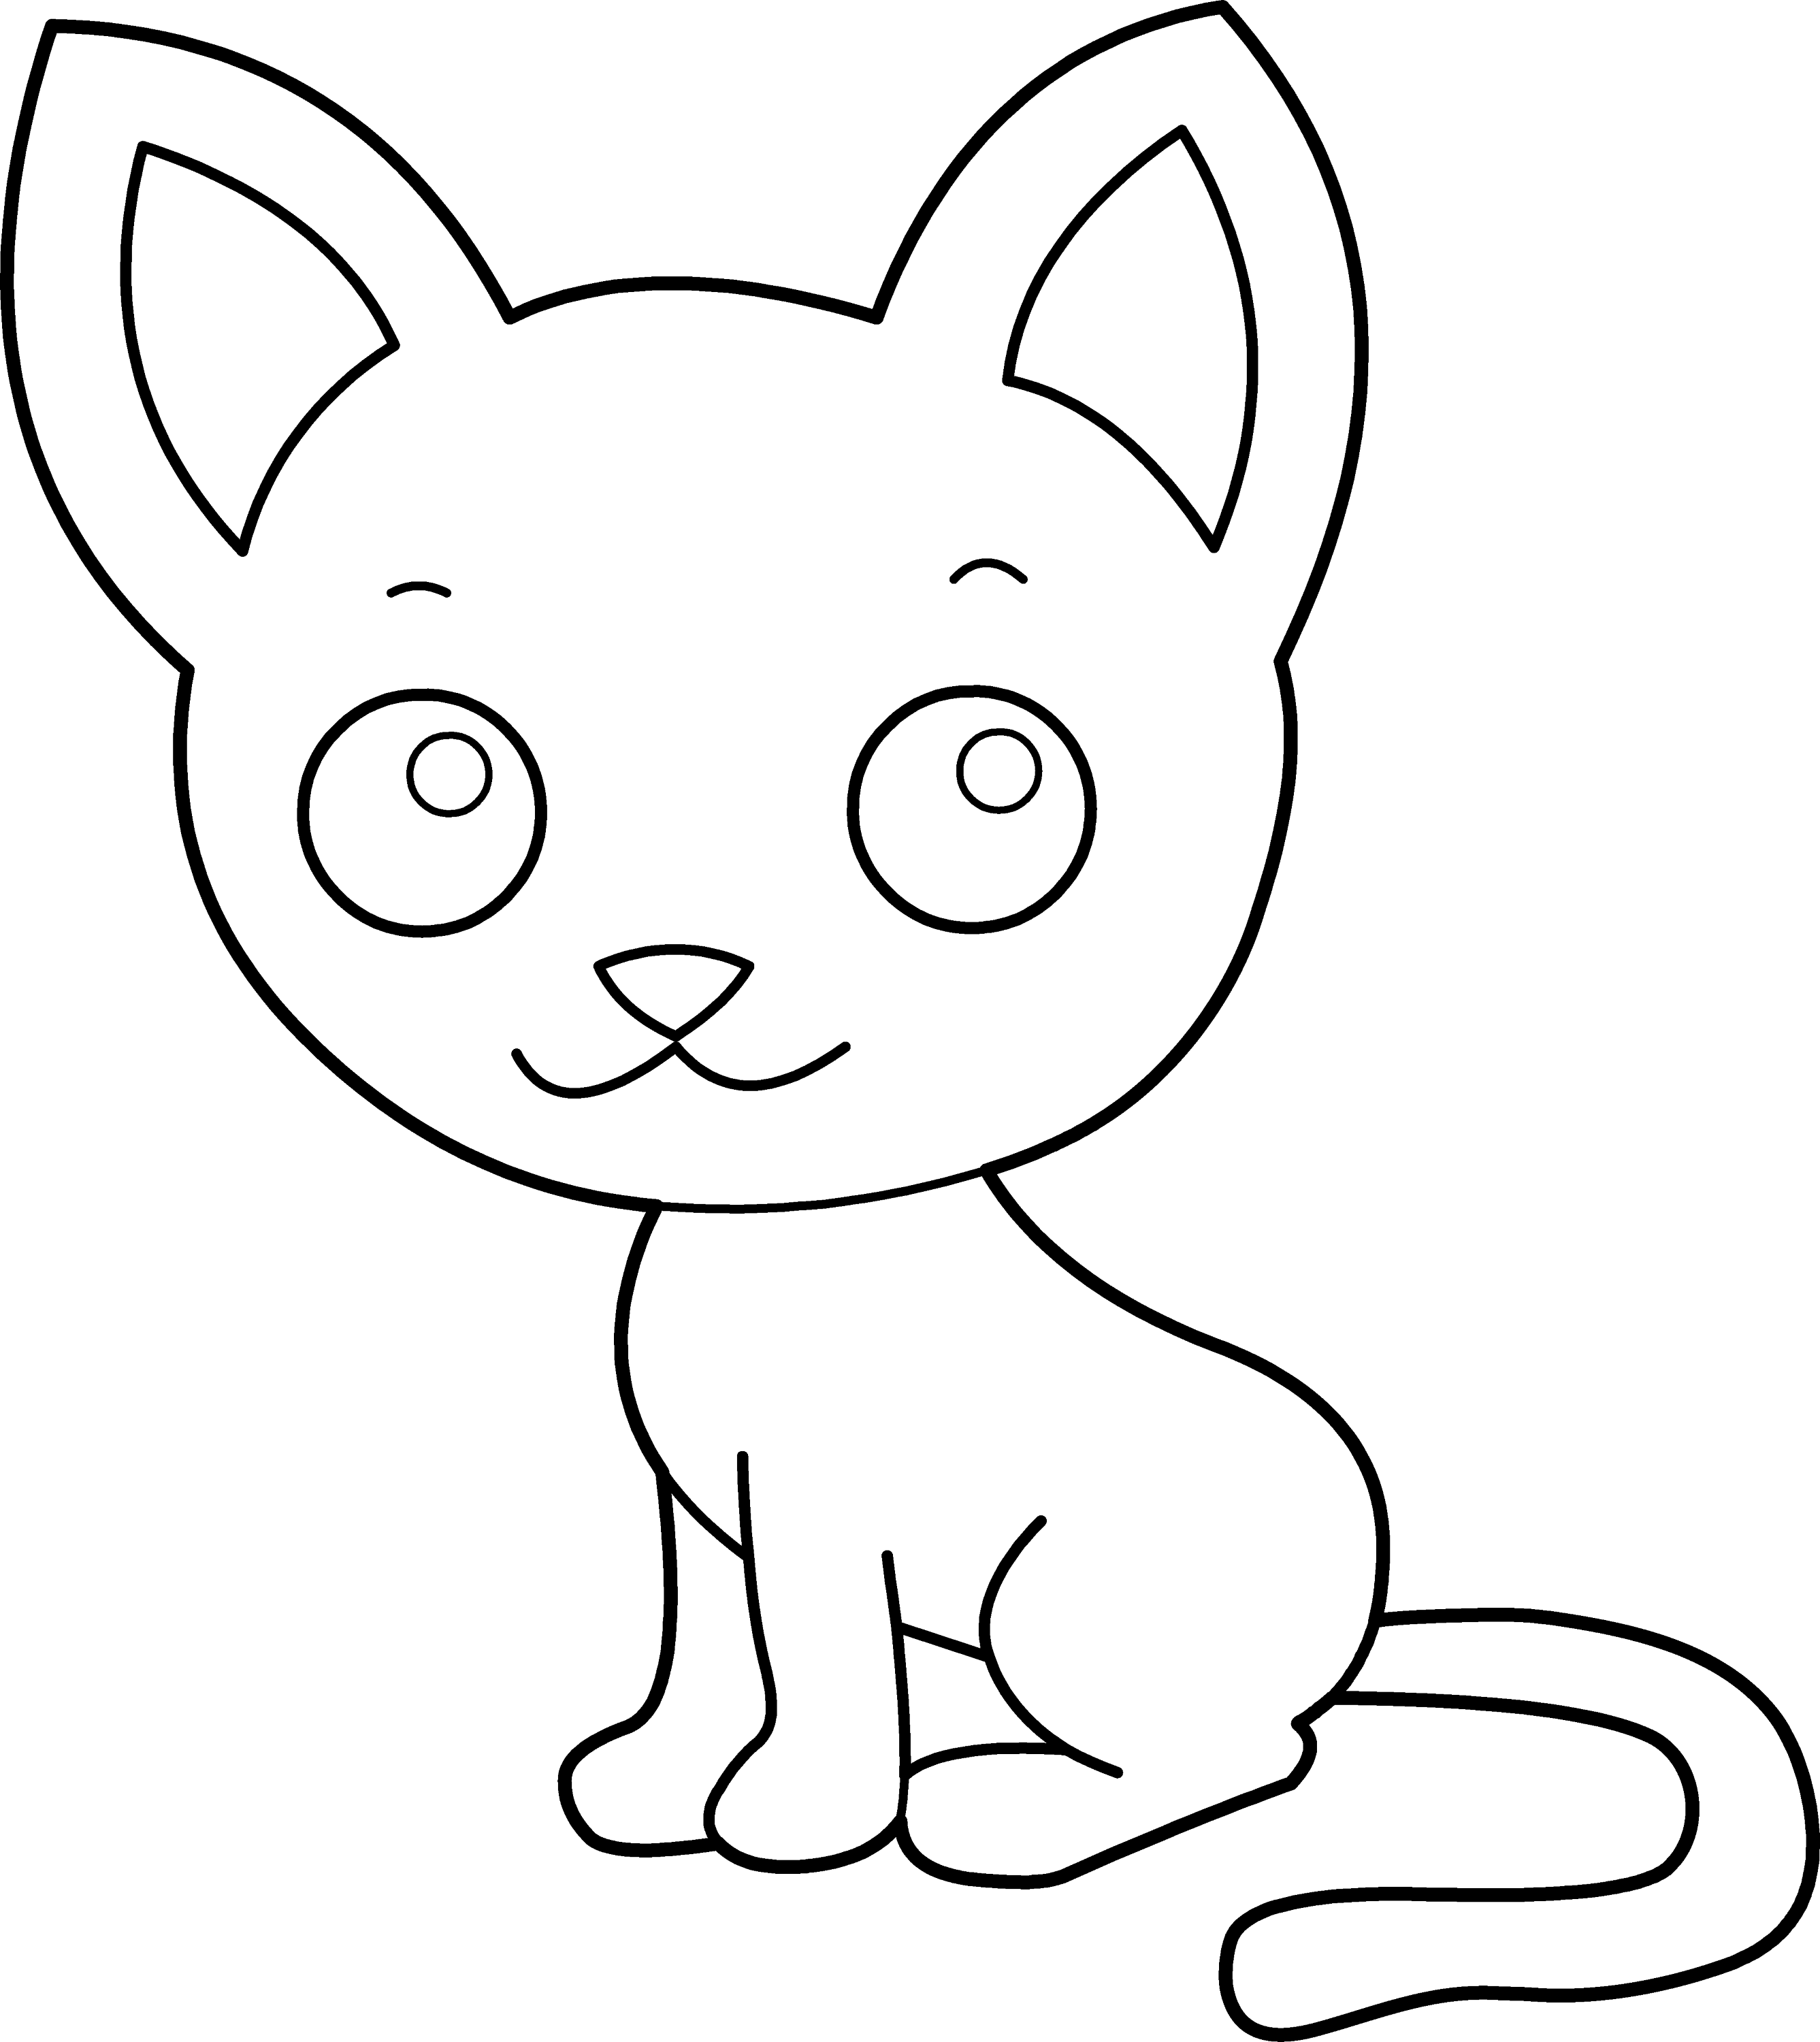 Cute Kitty Cat Coloring Page - Free Clip Art